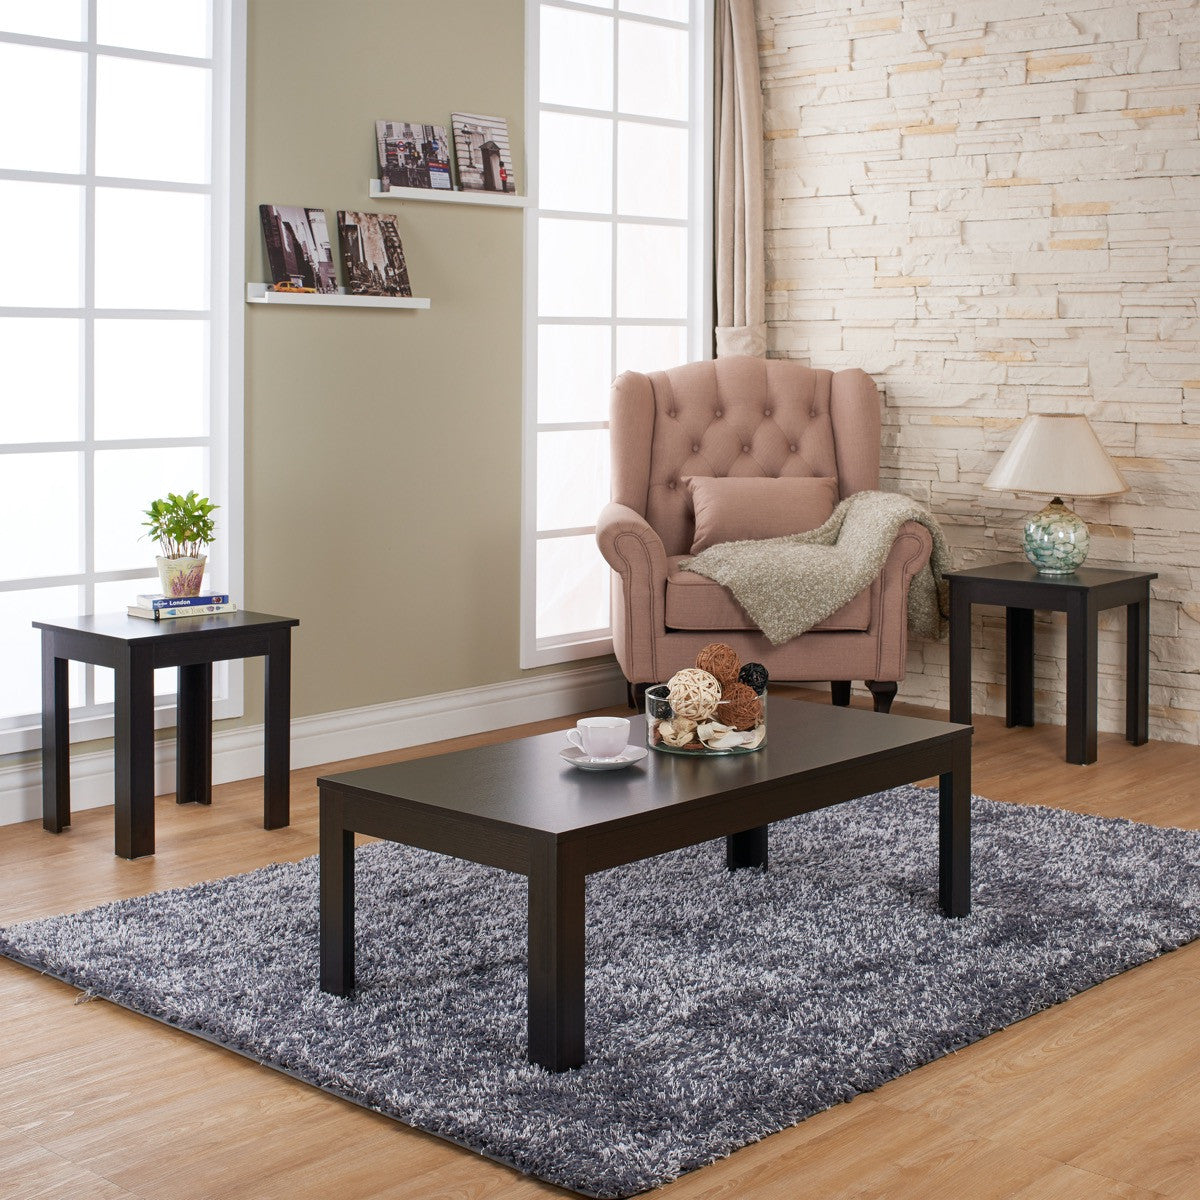 Cappuccino Coffee Table Set.Furniture Of America Somina 3pk Coffee Table Set Cappuccino